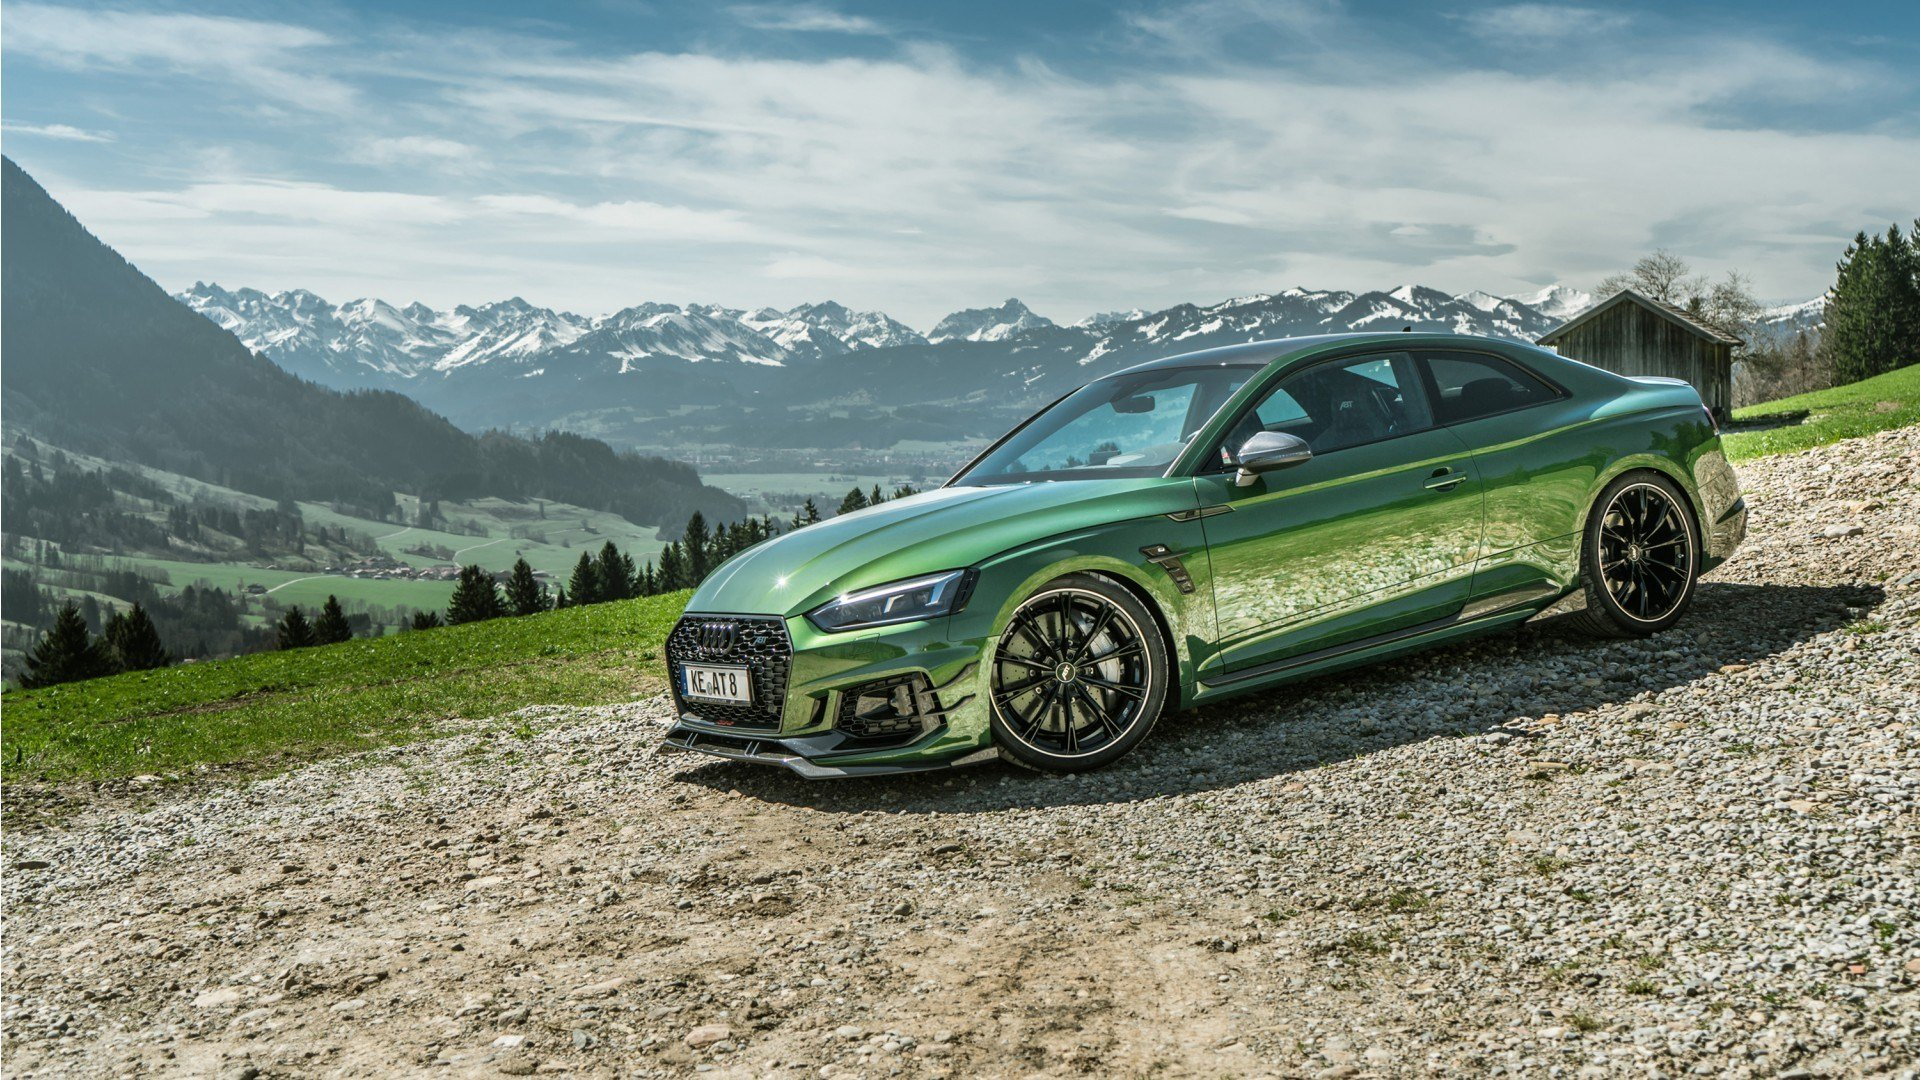 Latest 2018 Abt Audi Rs5 R Coupe Wallpaper Hd Car Wallpapers Free Download